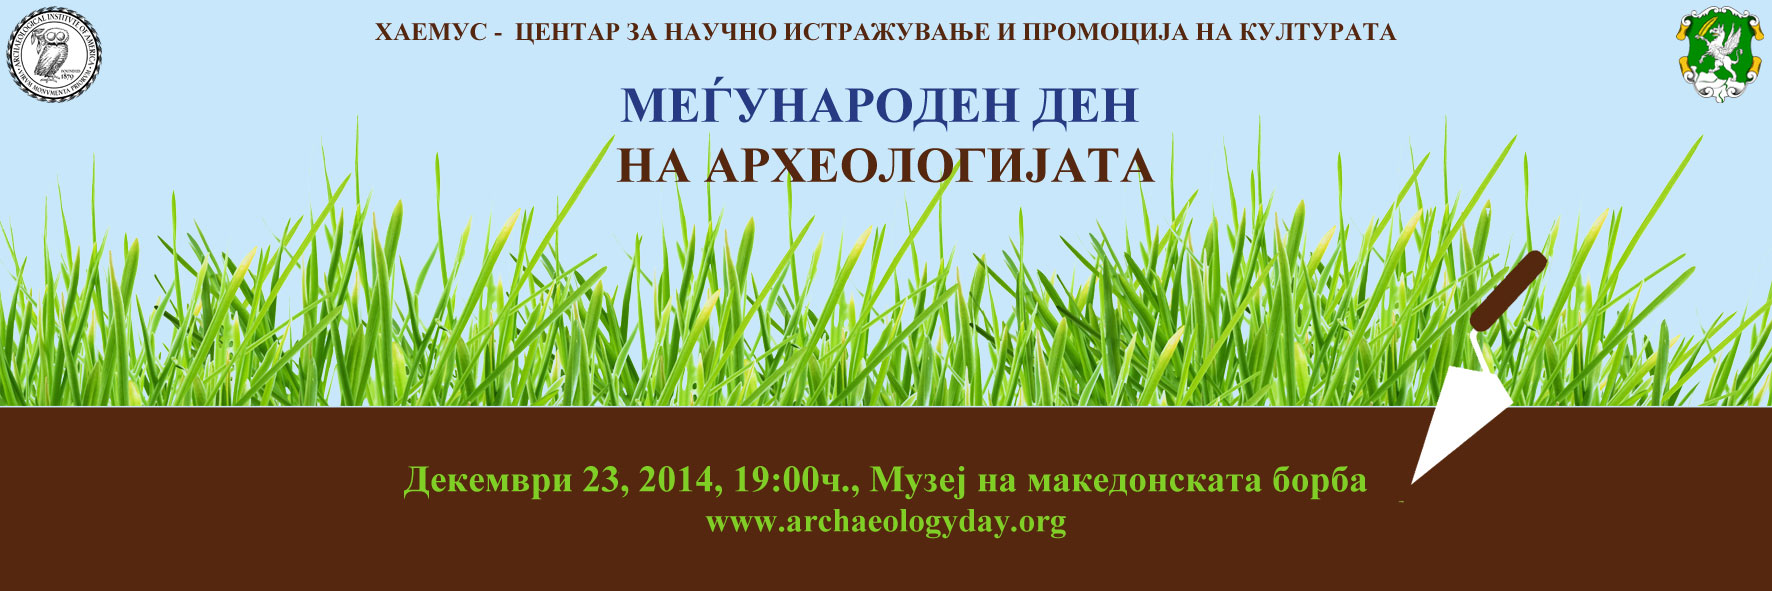 International-arch-day-2014_by_HAEMUS